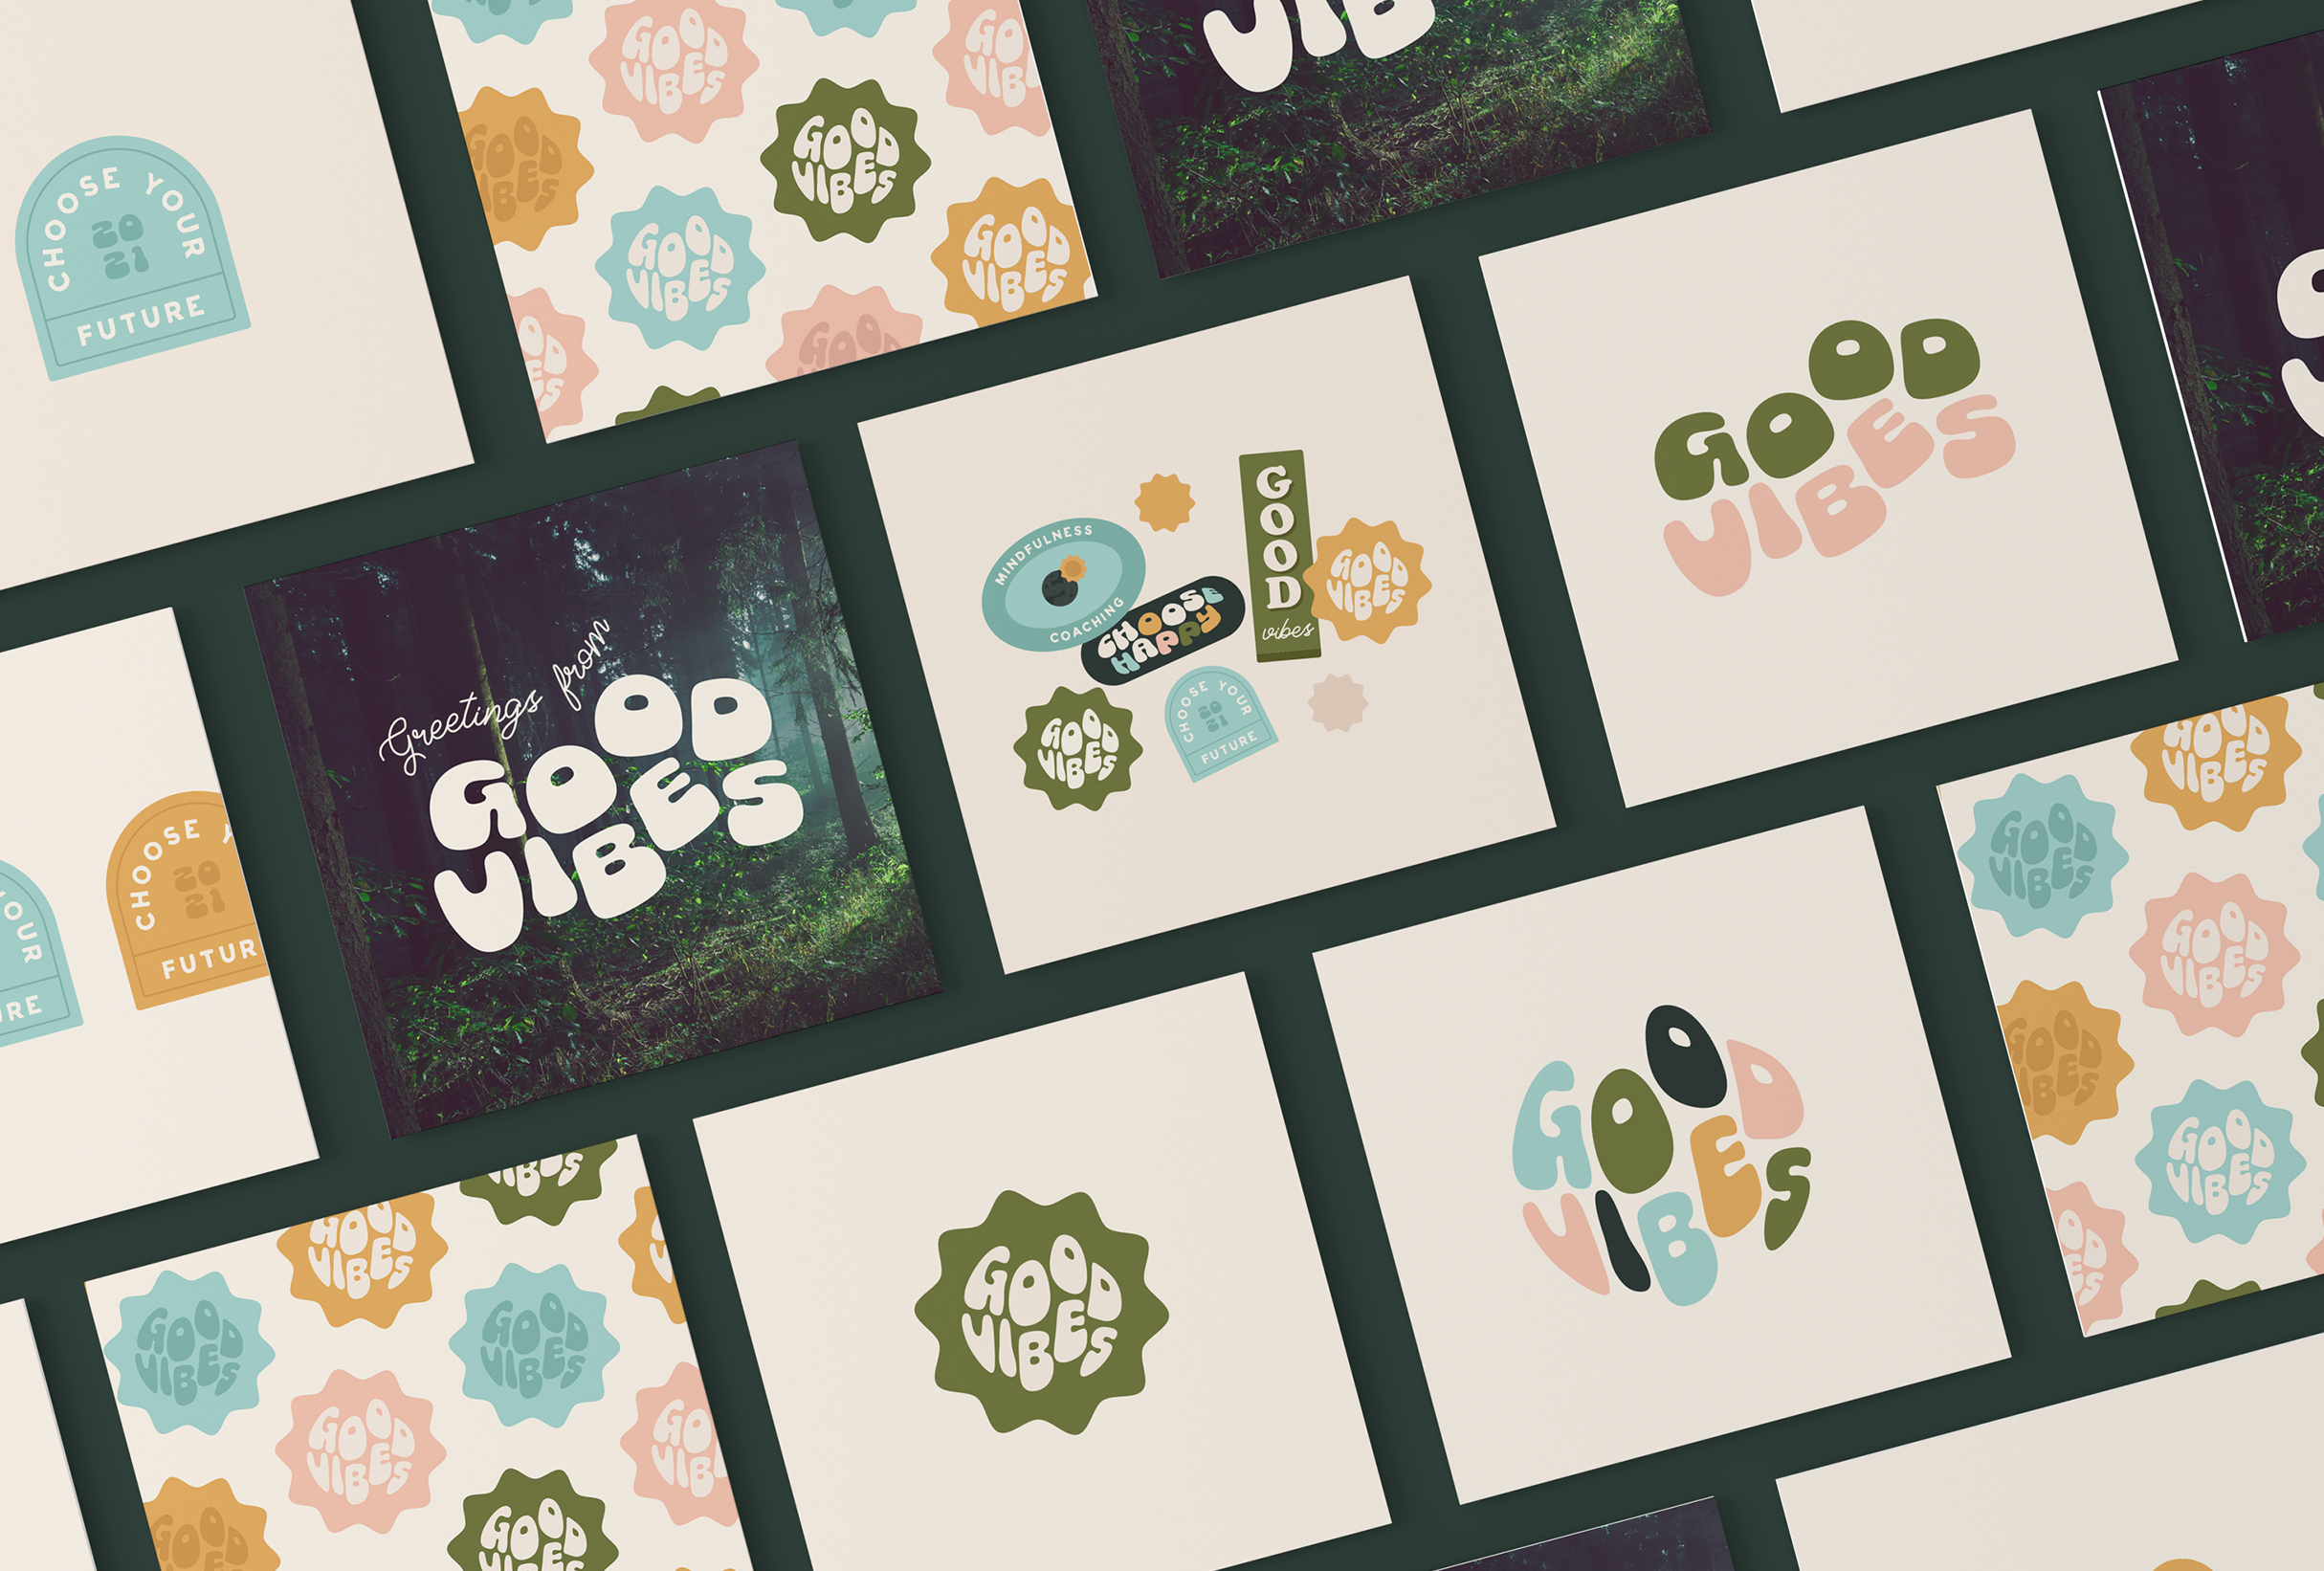 Business card designs for Bobbie at Good Vibes, a mindfulness & coaching business for women within the creative & tech industries - designed by Wiltshire-based graphic designer, Kaye Huett